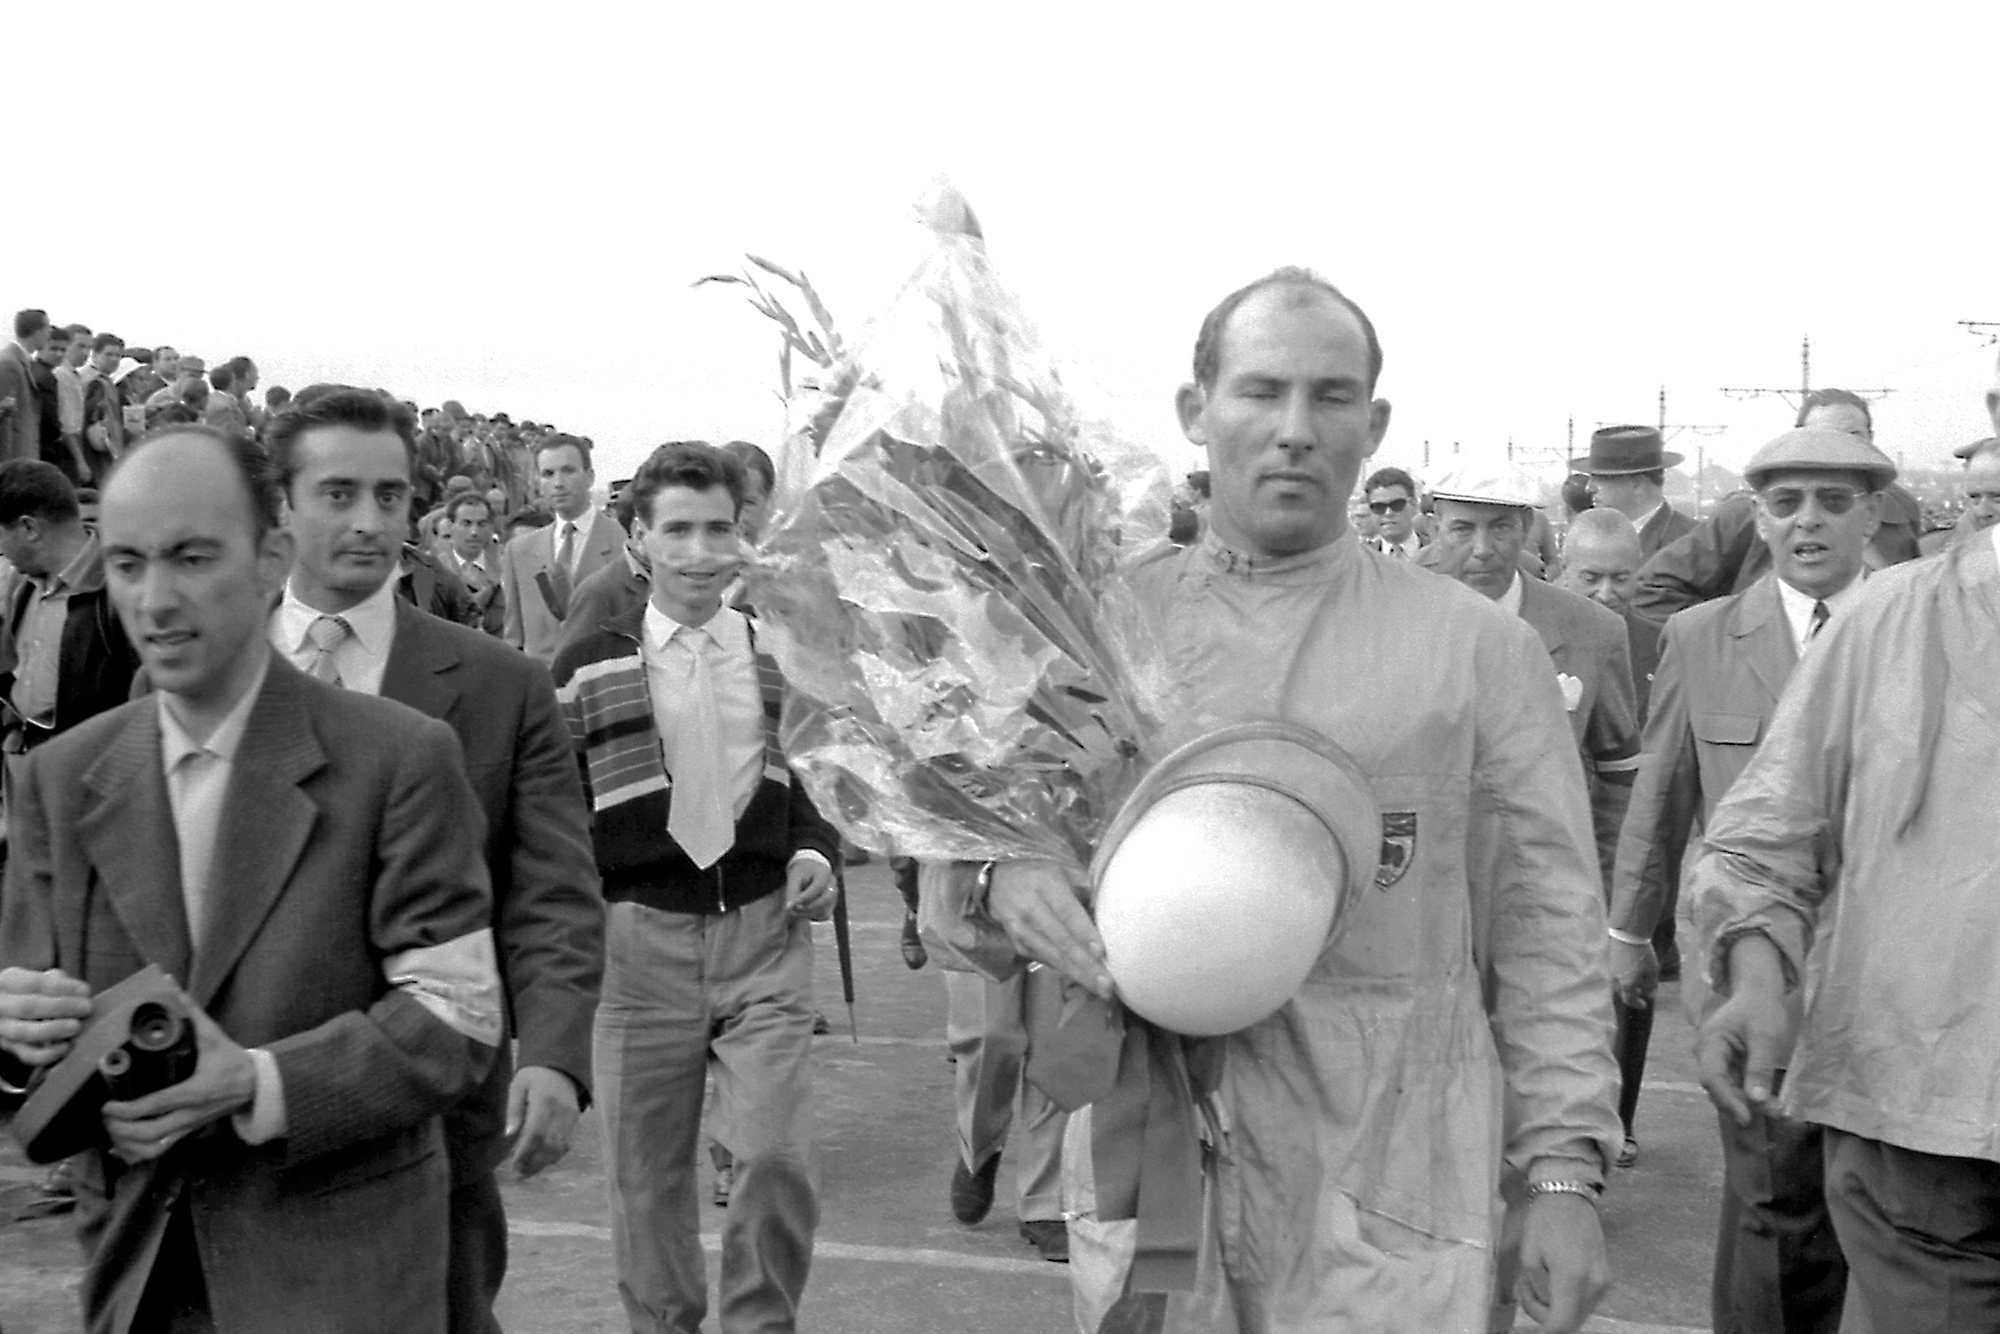 Stirling Moss after winning the 1958 Portuguese Grand Prix